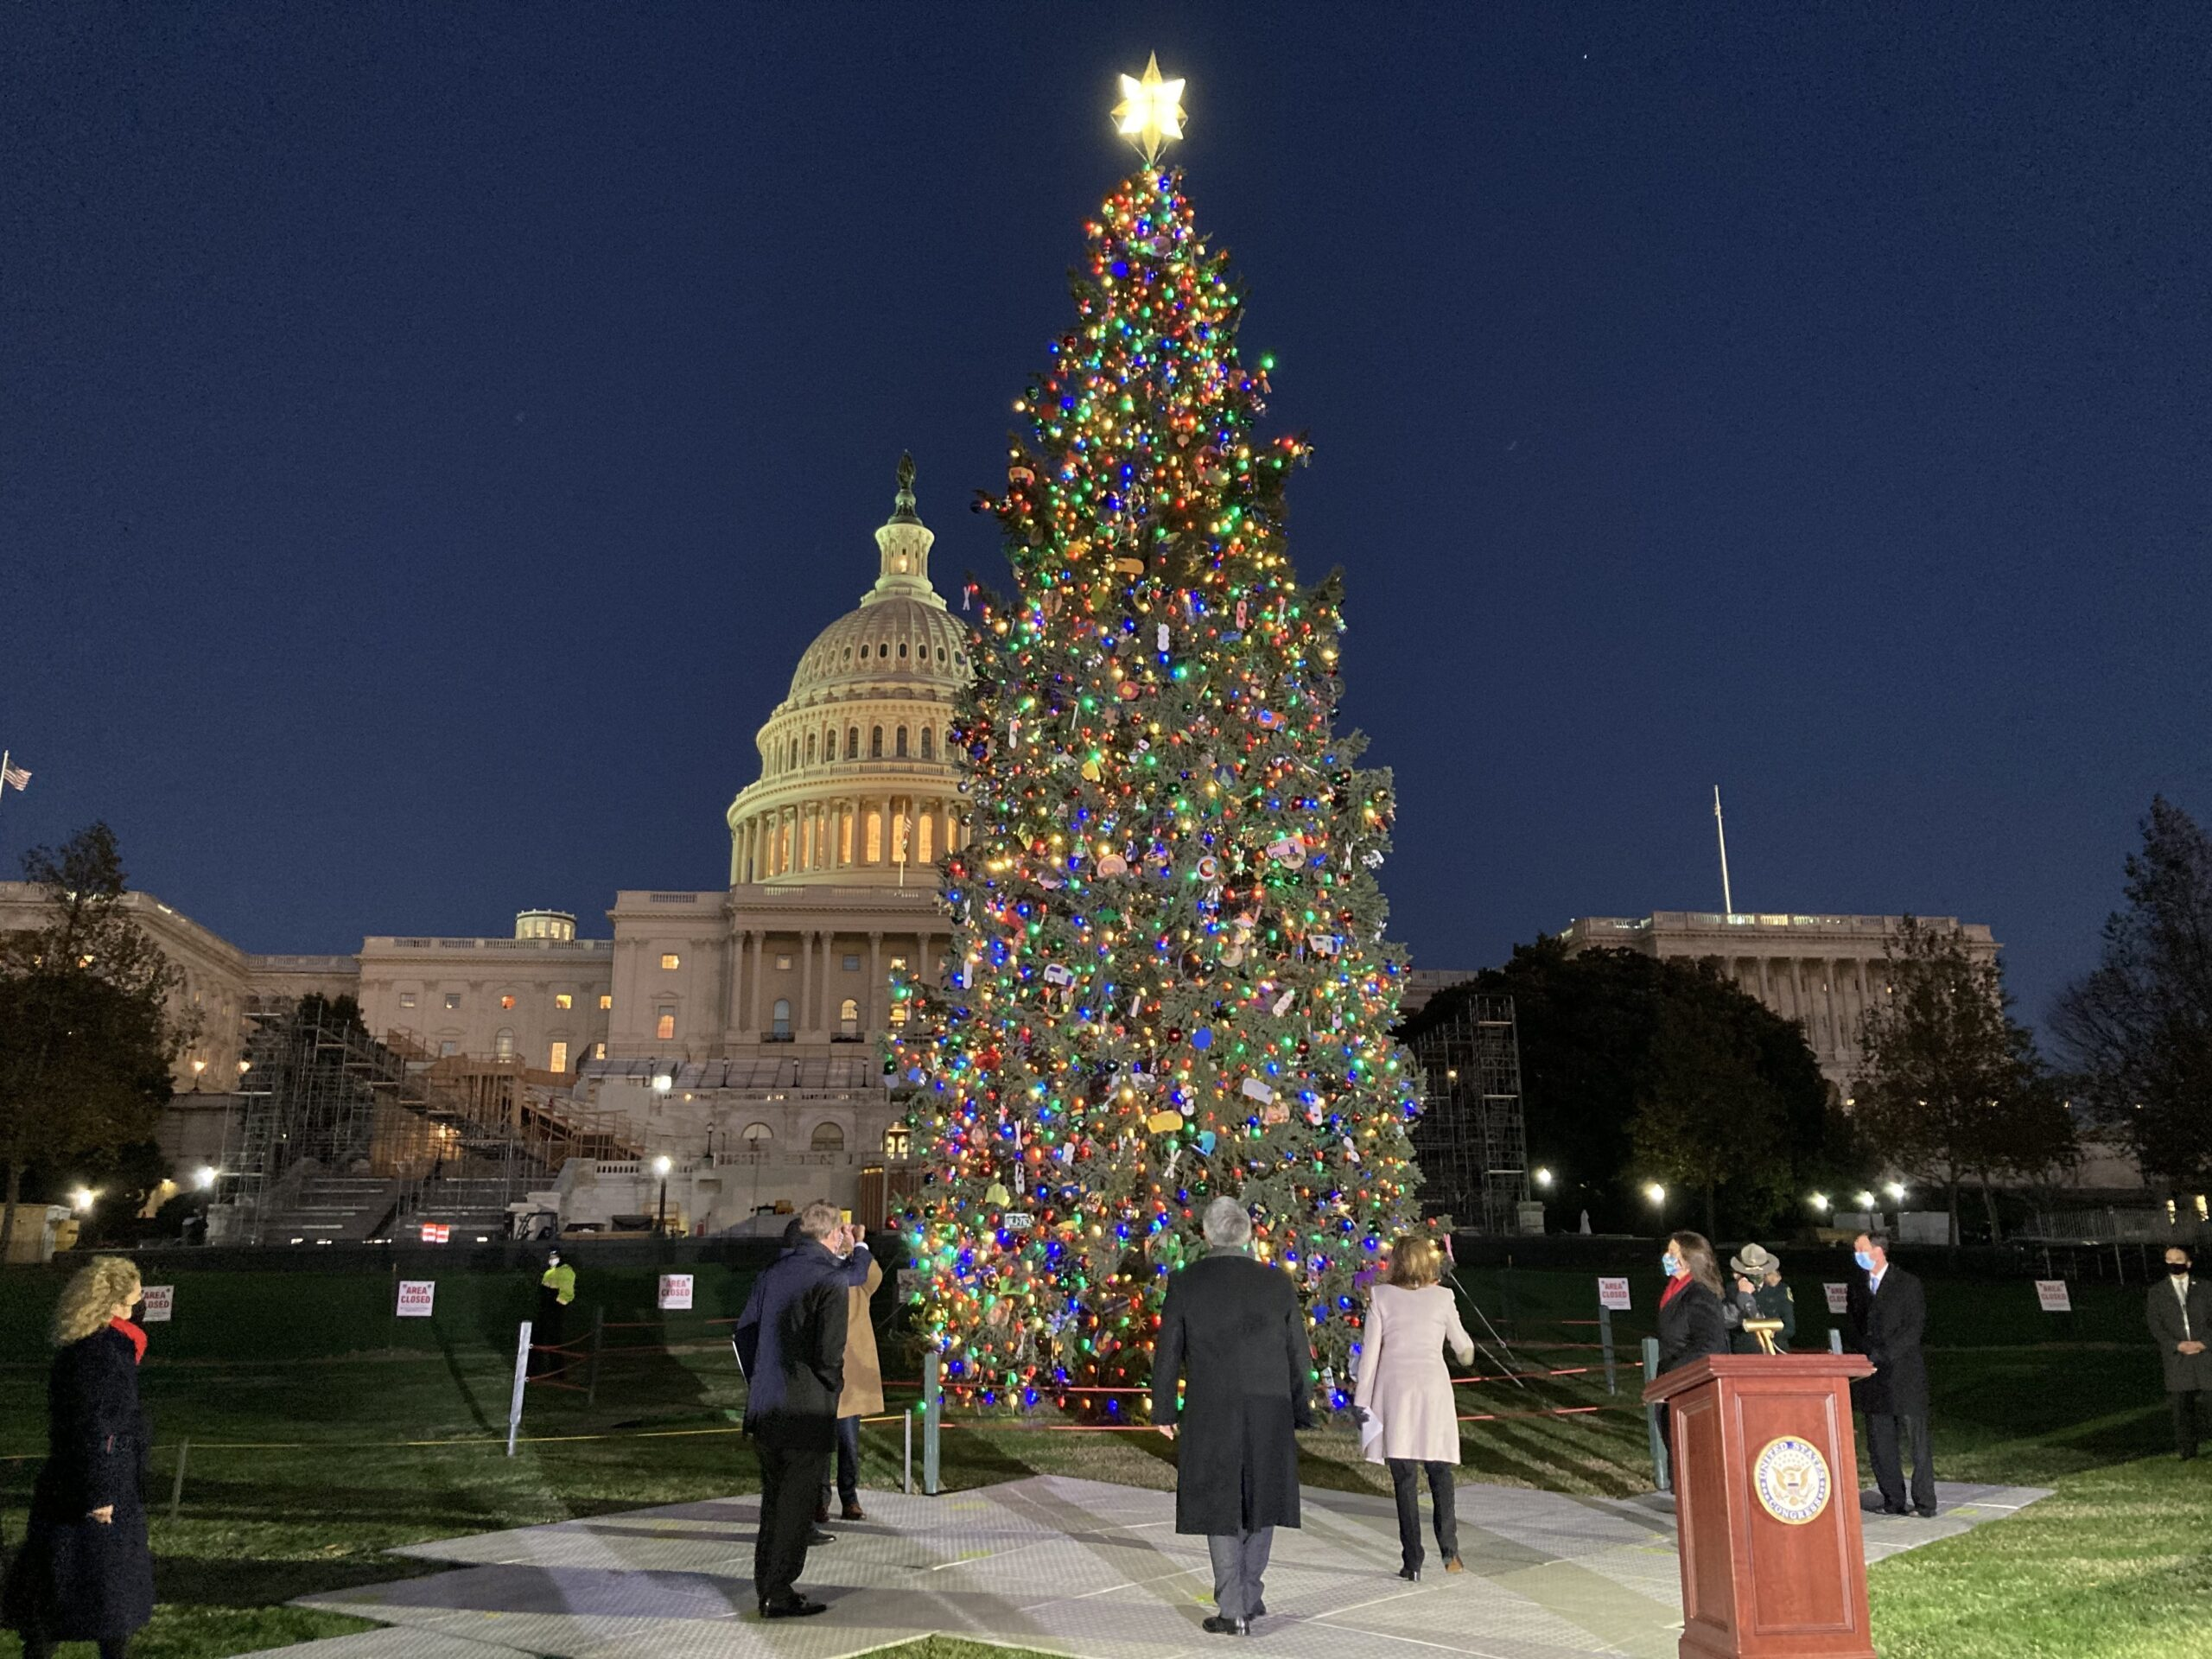 "Members of the Colorado delegation watch as the lights are turned on the Capitol Christmas tree. ""I thank the Colorado delegation and the people of Colorado for blessing our Capitol's Christmas celebration with this magnificent Engelmann Spruse from the GMUG Forest,"" said House Speaker Nancy Pelosi."